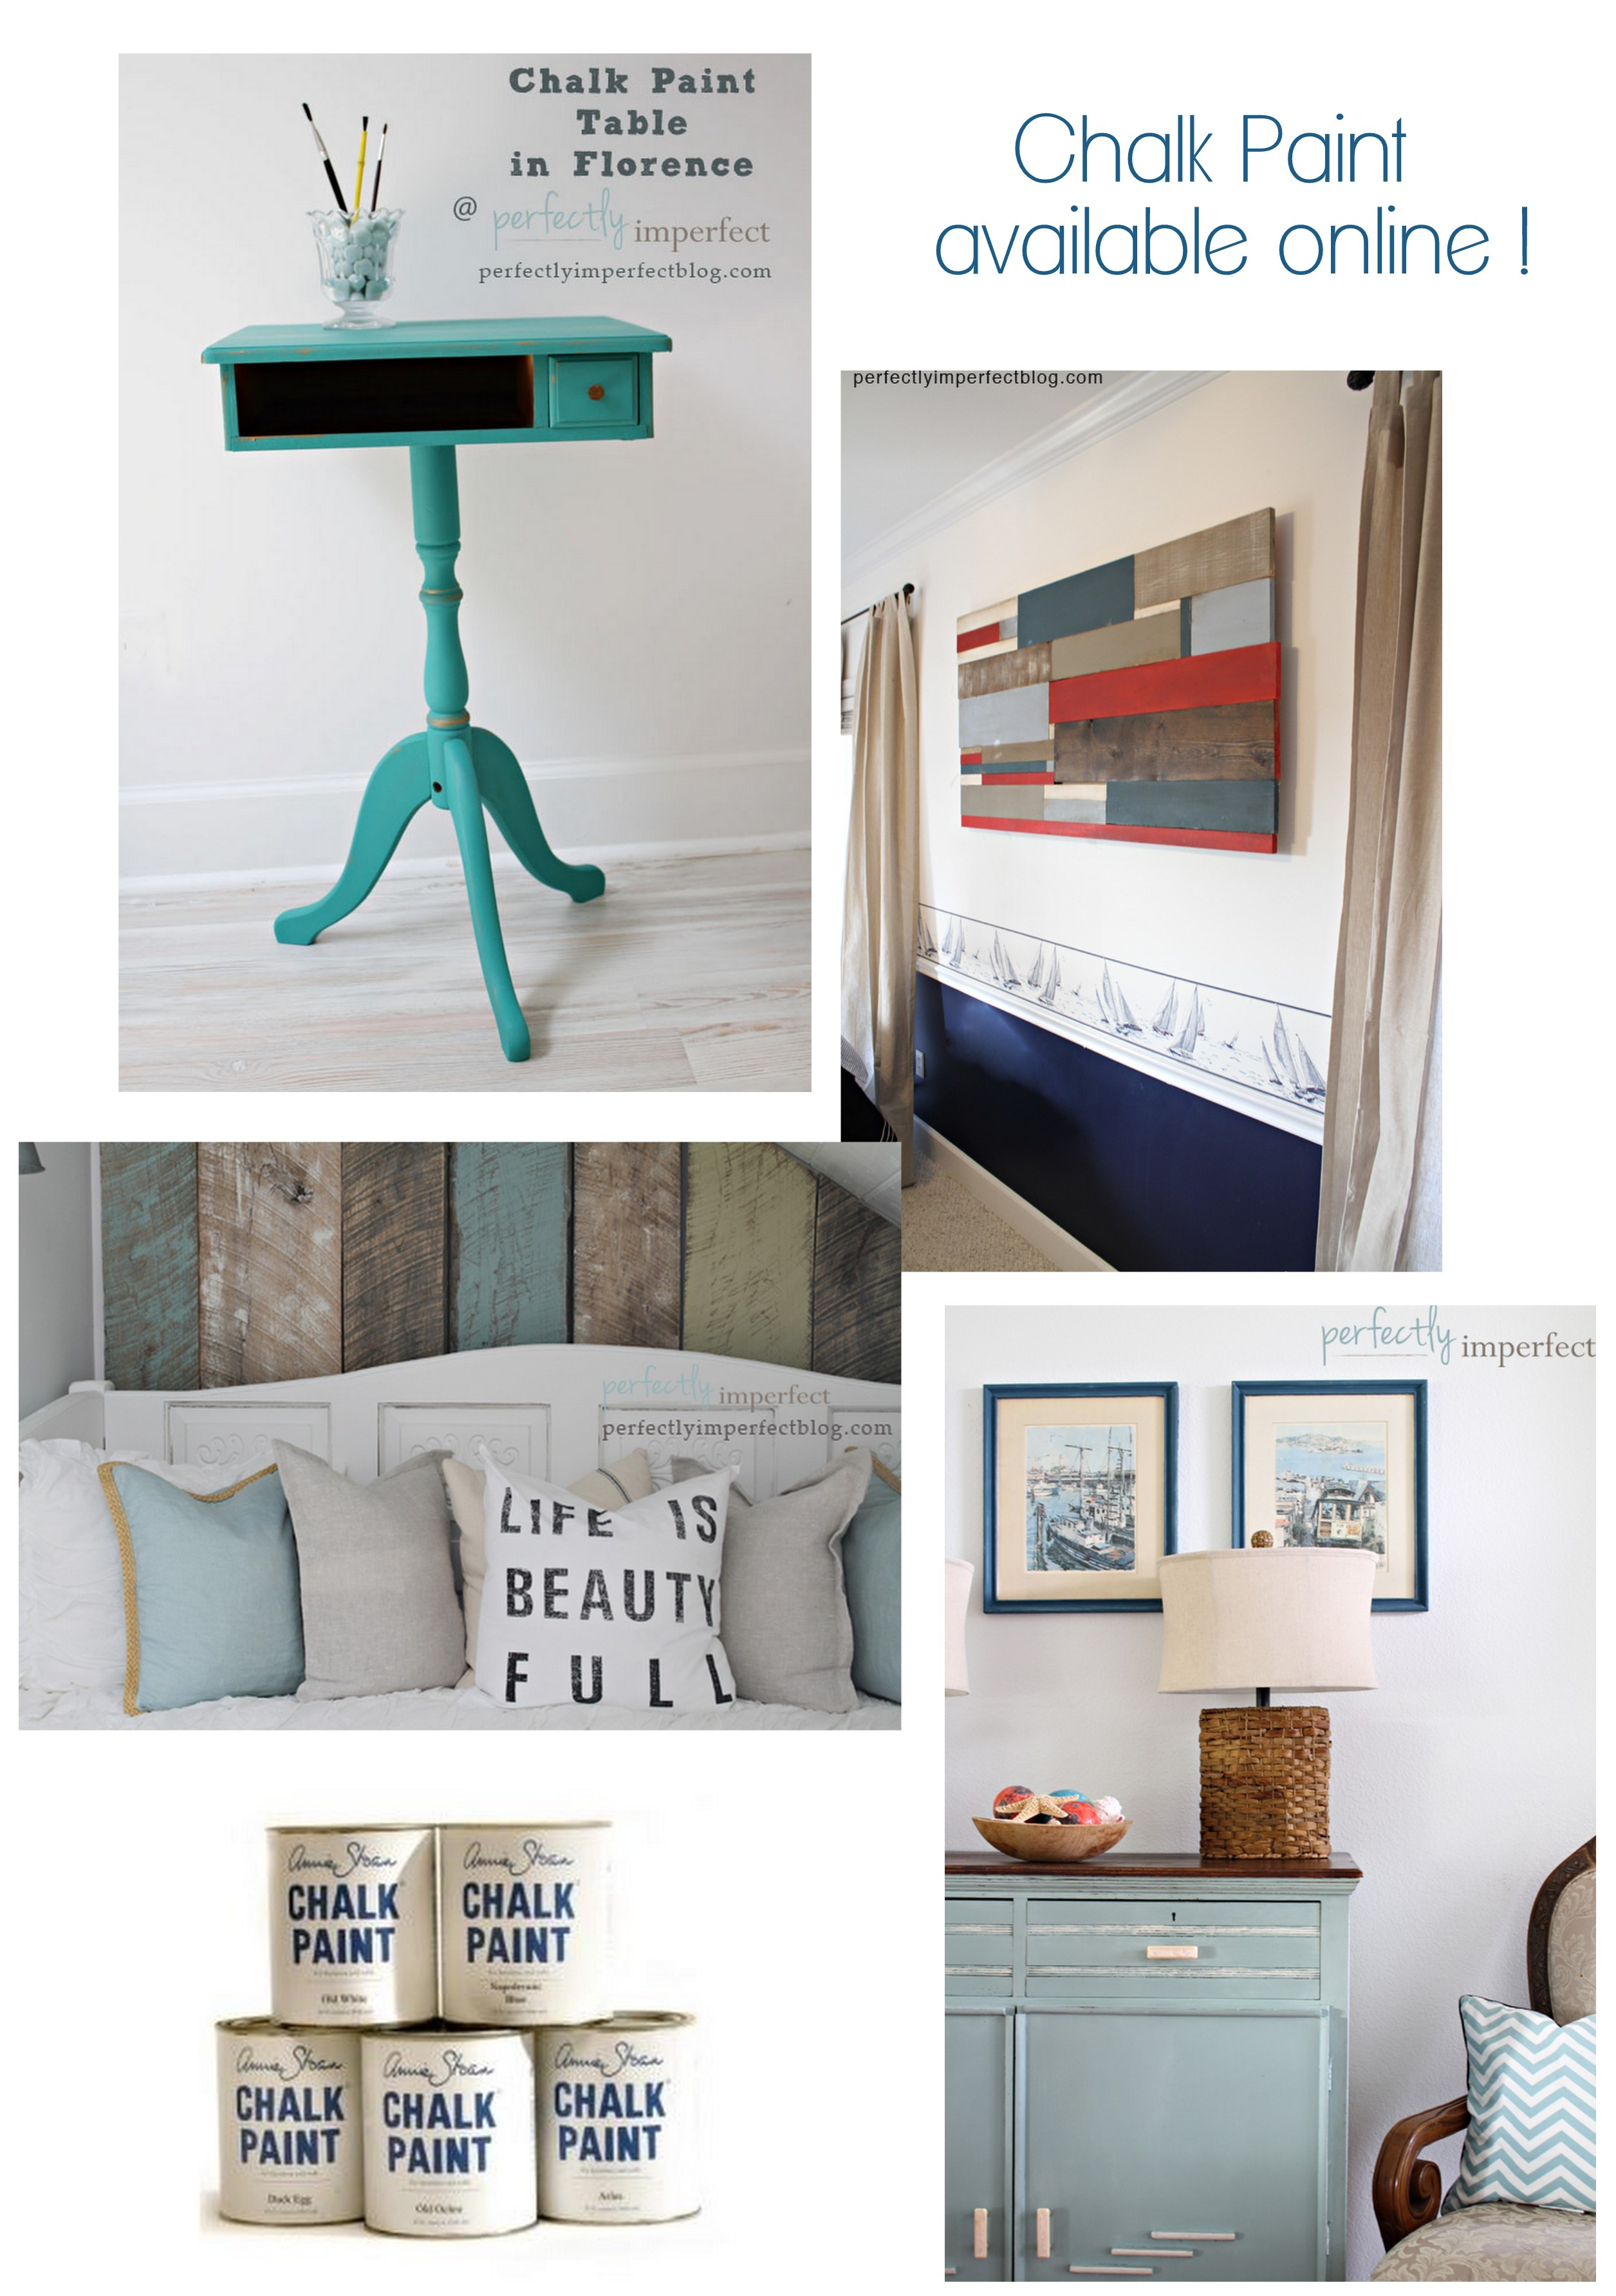 Purchase annie sloan chalk paint - You Can Now Purchase Any Of The Annie Sloan Chalk Paint Colors Through Shaunna Including The Newest Color On The End Table Pictured Above A Vivid And Rich